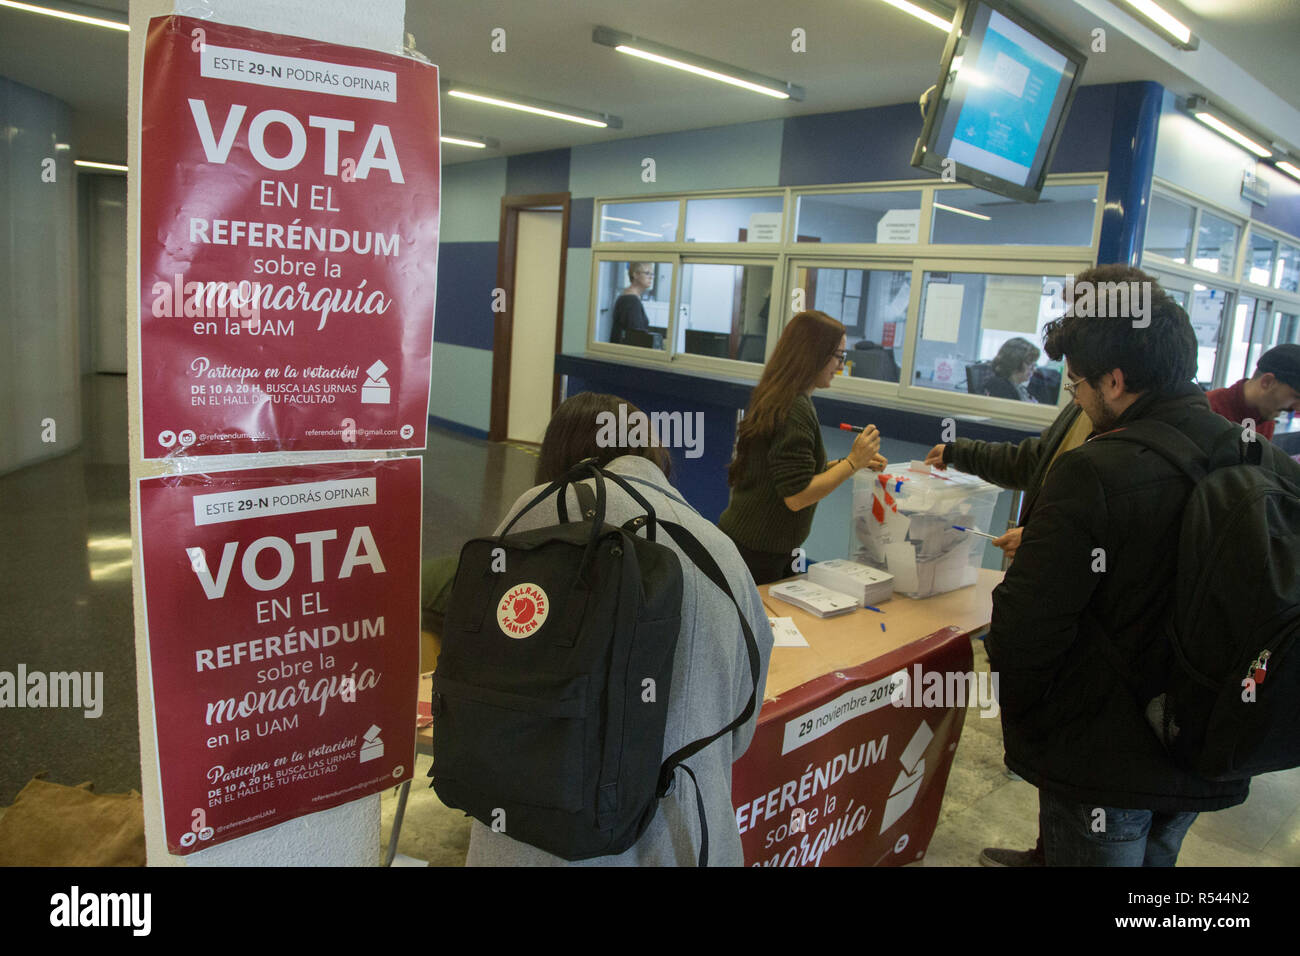 November 29, 2018 - Madrid, Spain - Placards announcing the voting seen inside the voting area..Volunteers from the Autonomous University of Madrid initiated the consultative referendum to decide if the thousands of students, professors and workers of the university want a legitimate vote to decide the form of the Spanish state and ask if they prefer monarchy or republic. This vote would mark the first voting date that would be extended to other Spanish universities and Spanish cities. (Credit Image: © Lito Lizana/SOPA Images via ZUMA Wire) - Stock Image